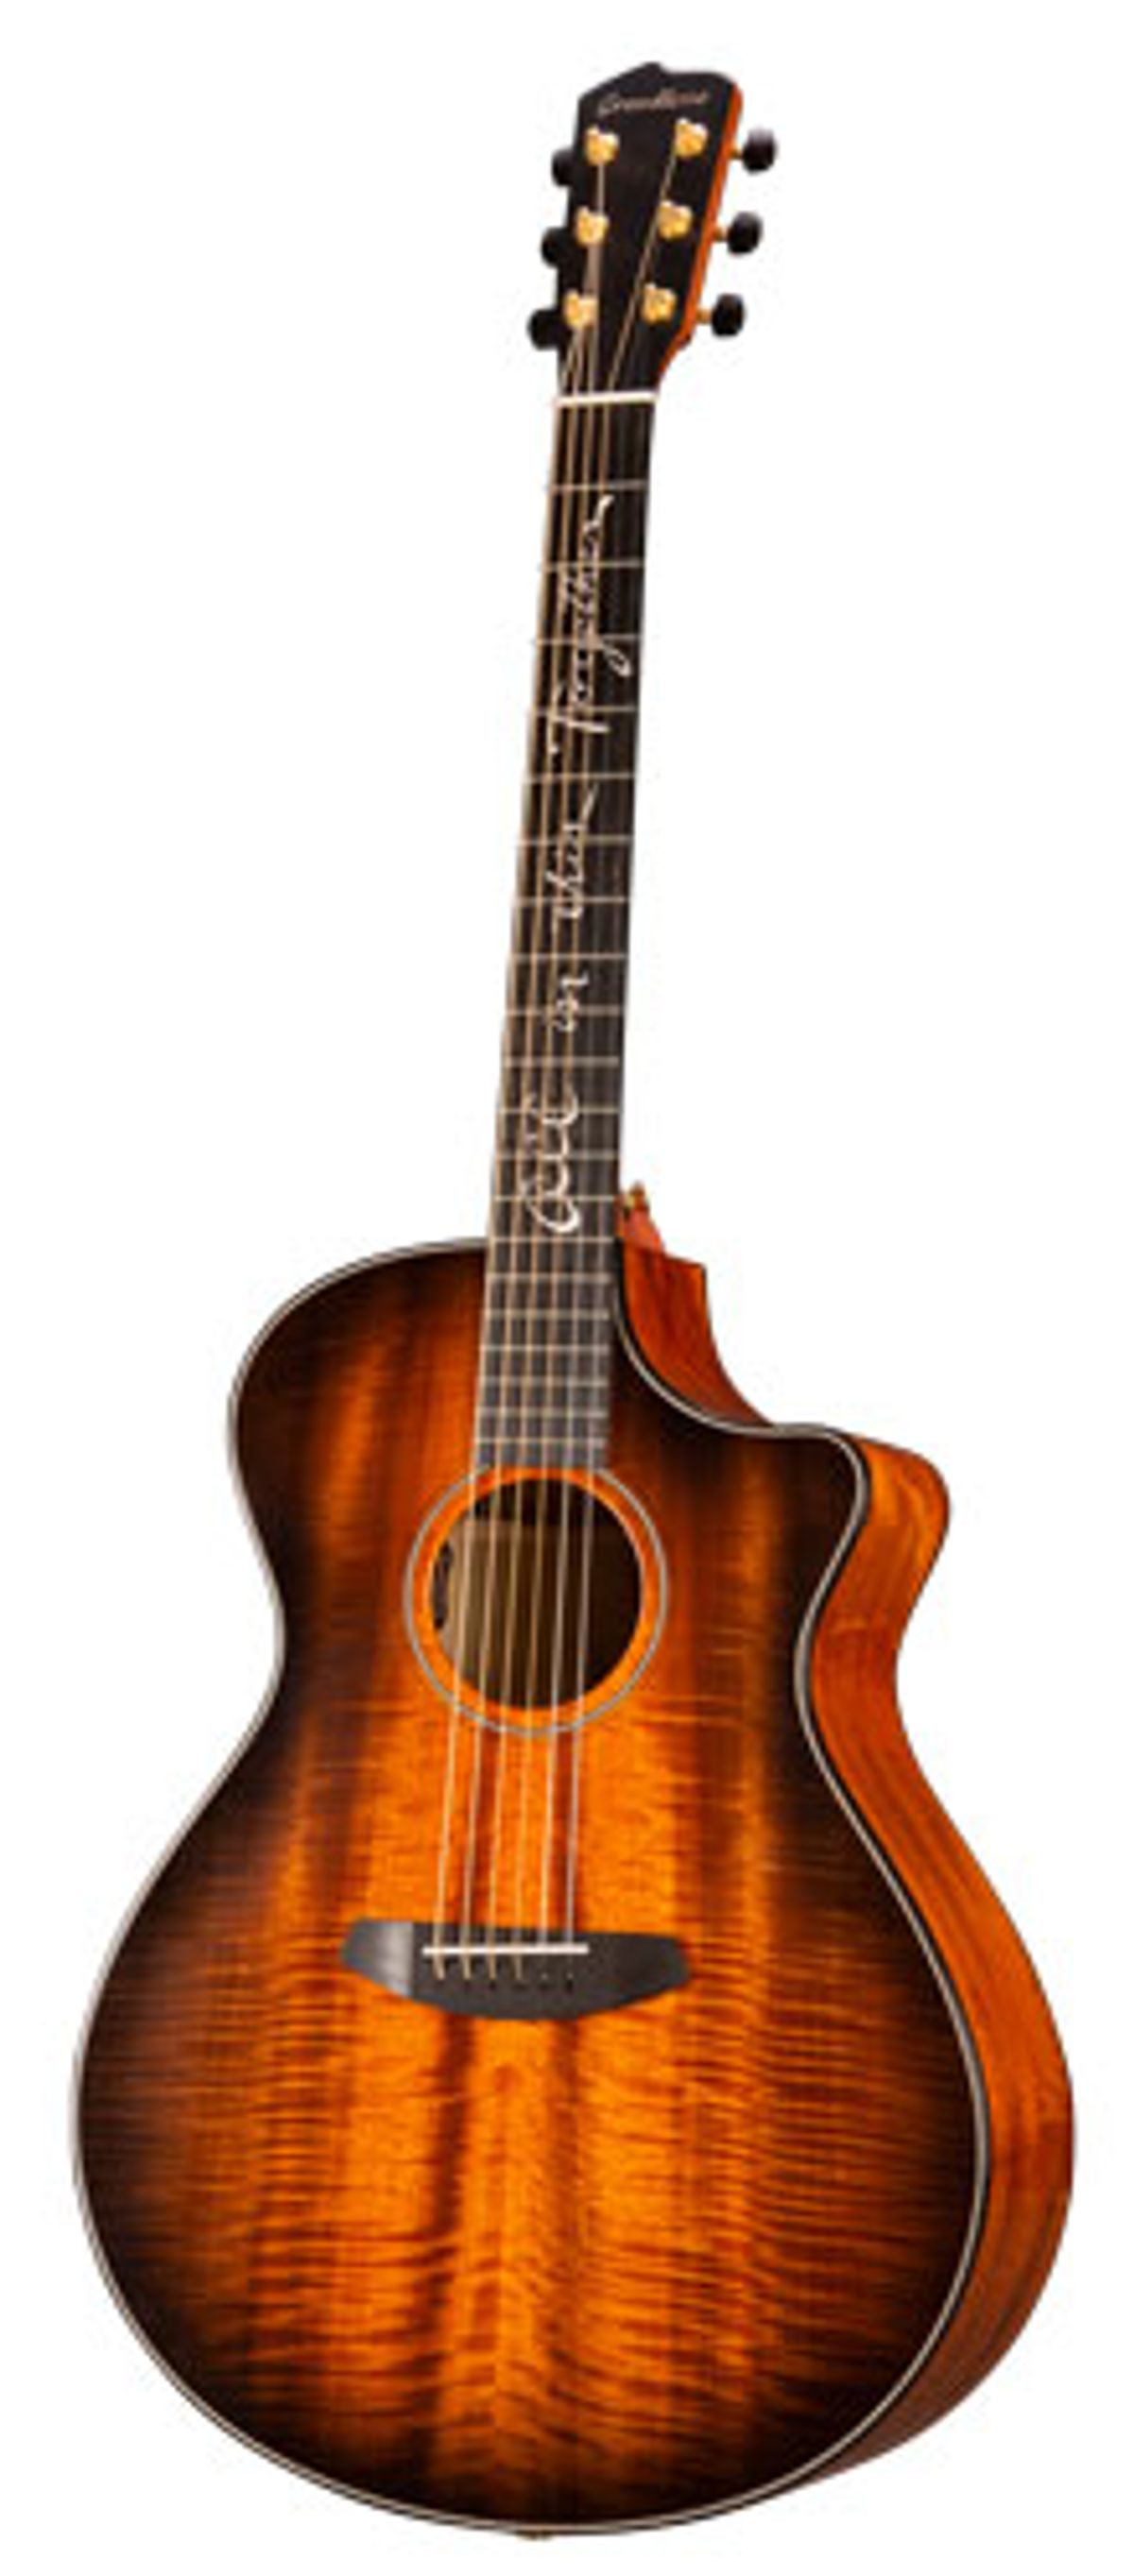 Breedlove and Jeff Bridges Announce Two New Sustainably Sourced Signature Model Guitars